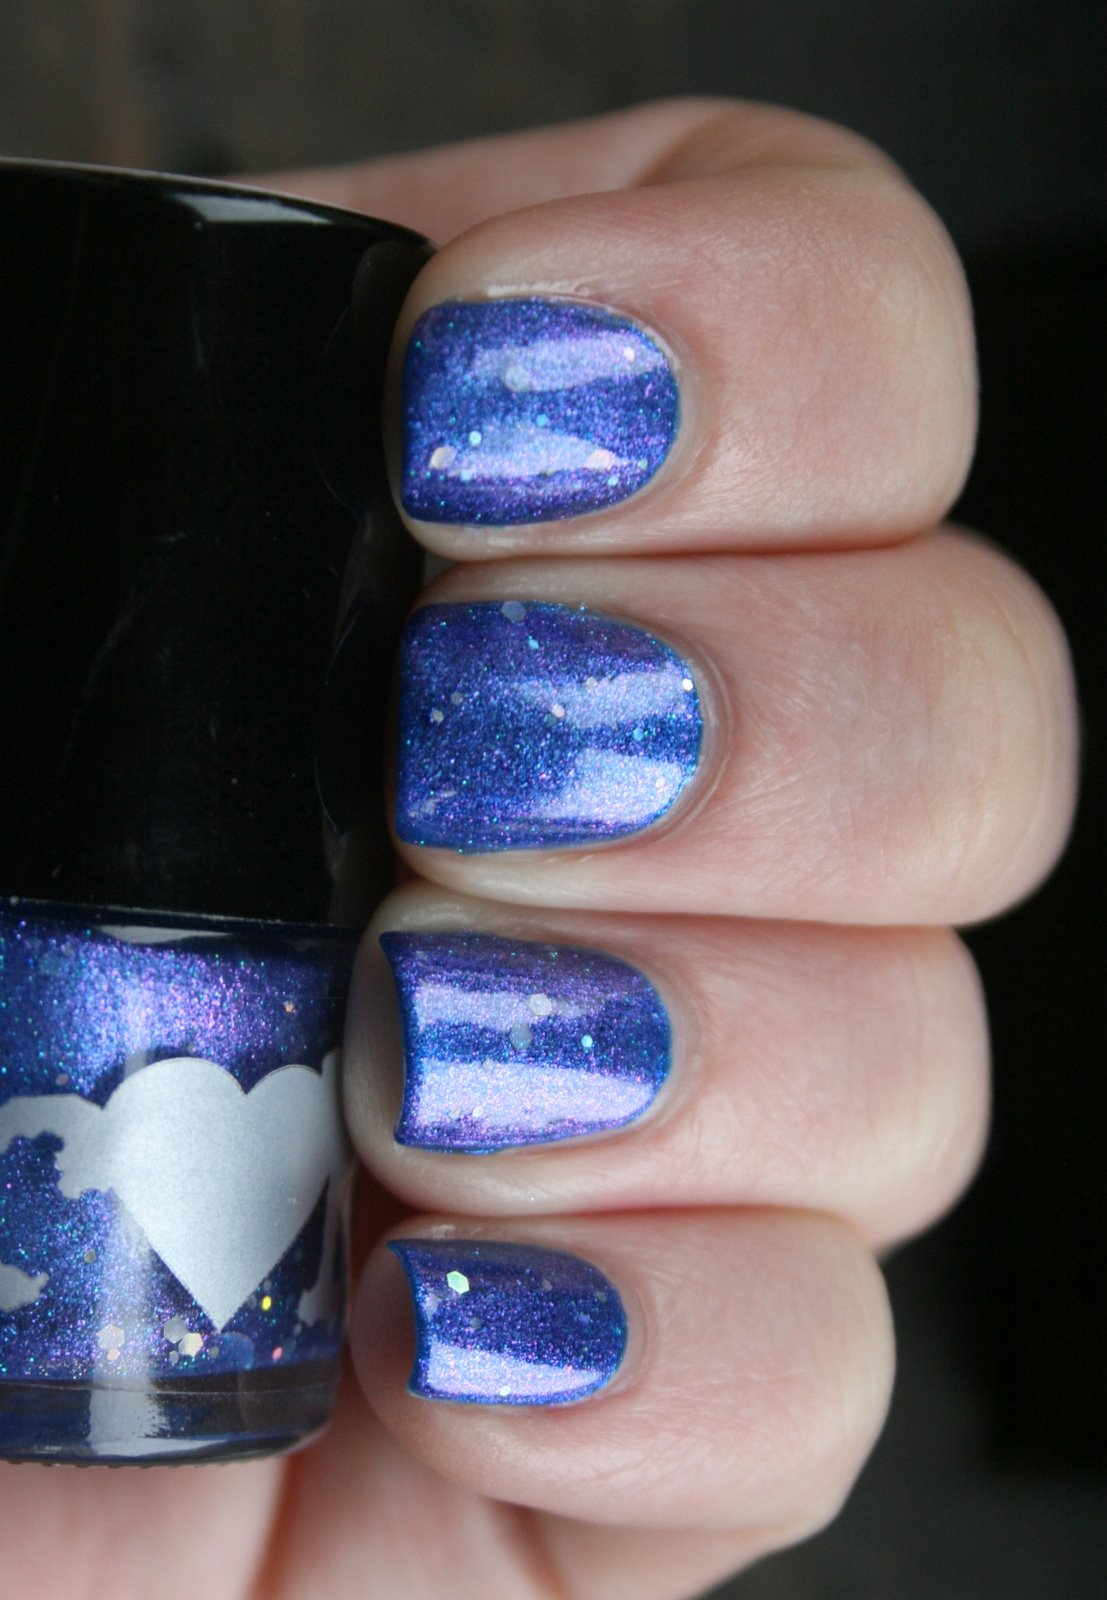 Rainbow Honey Mare of the Moon over China Glaze Blue Year's Eve swatch